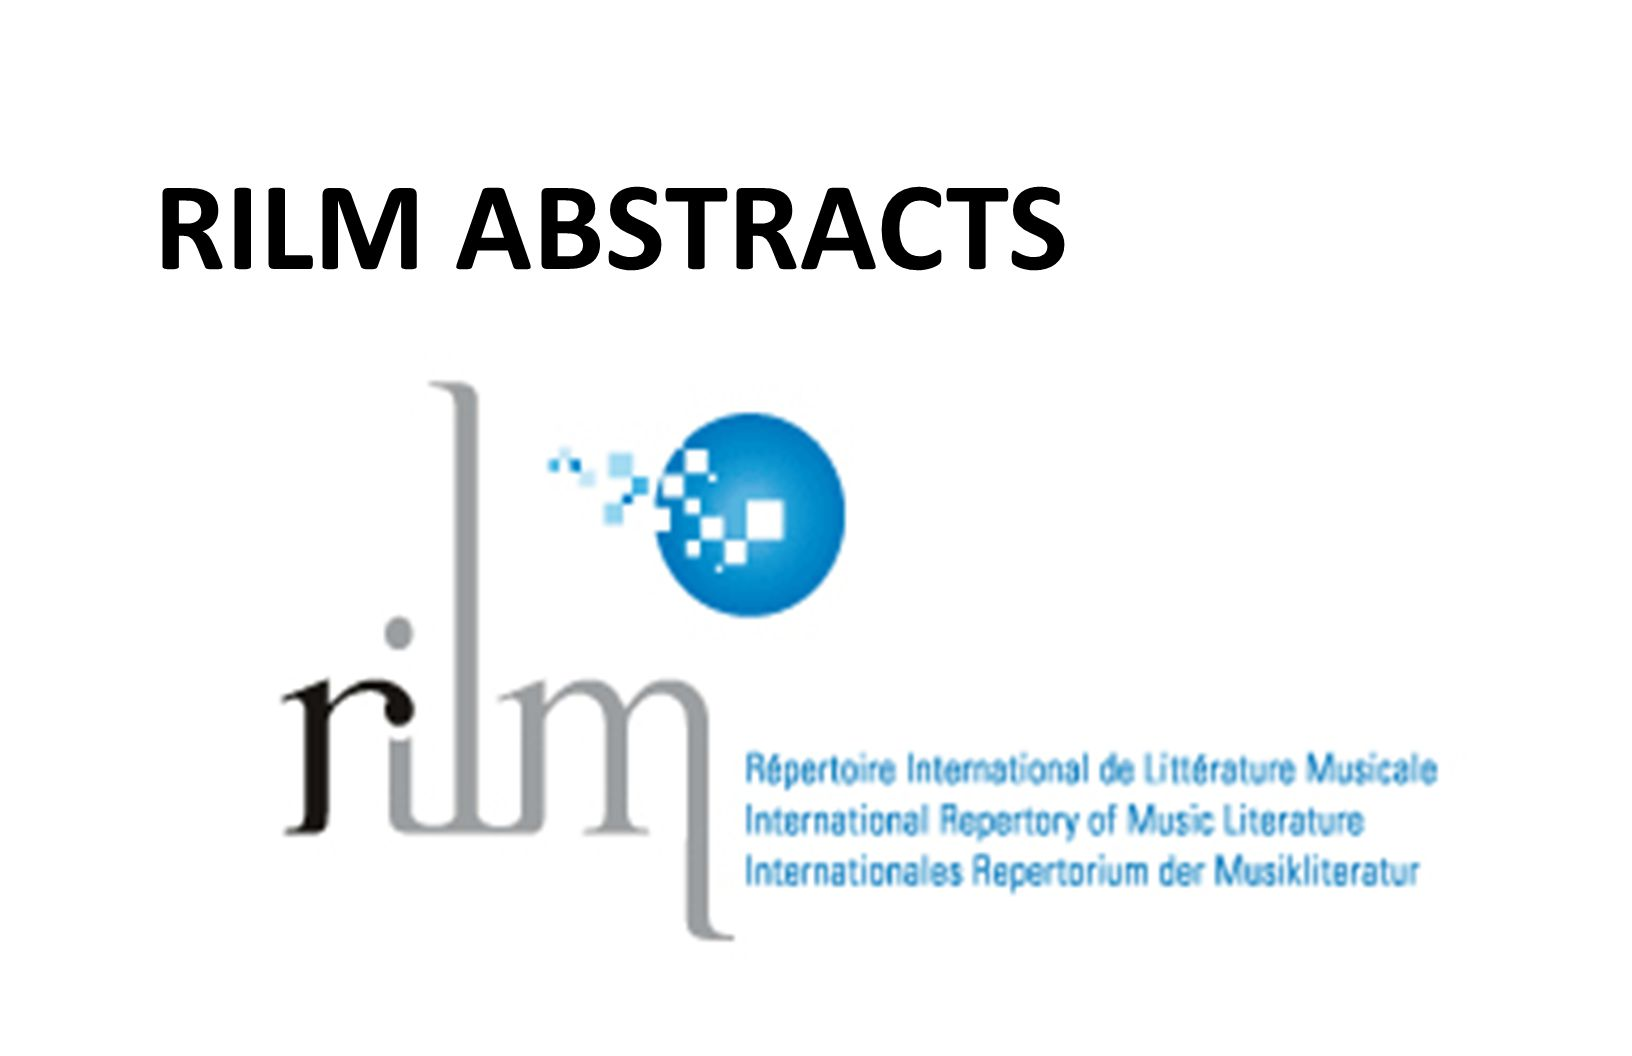 RILM ABSTRACTS